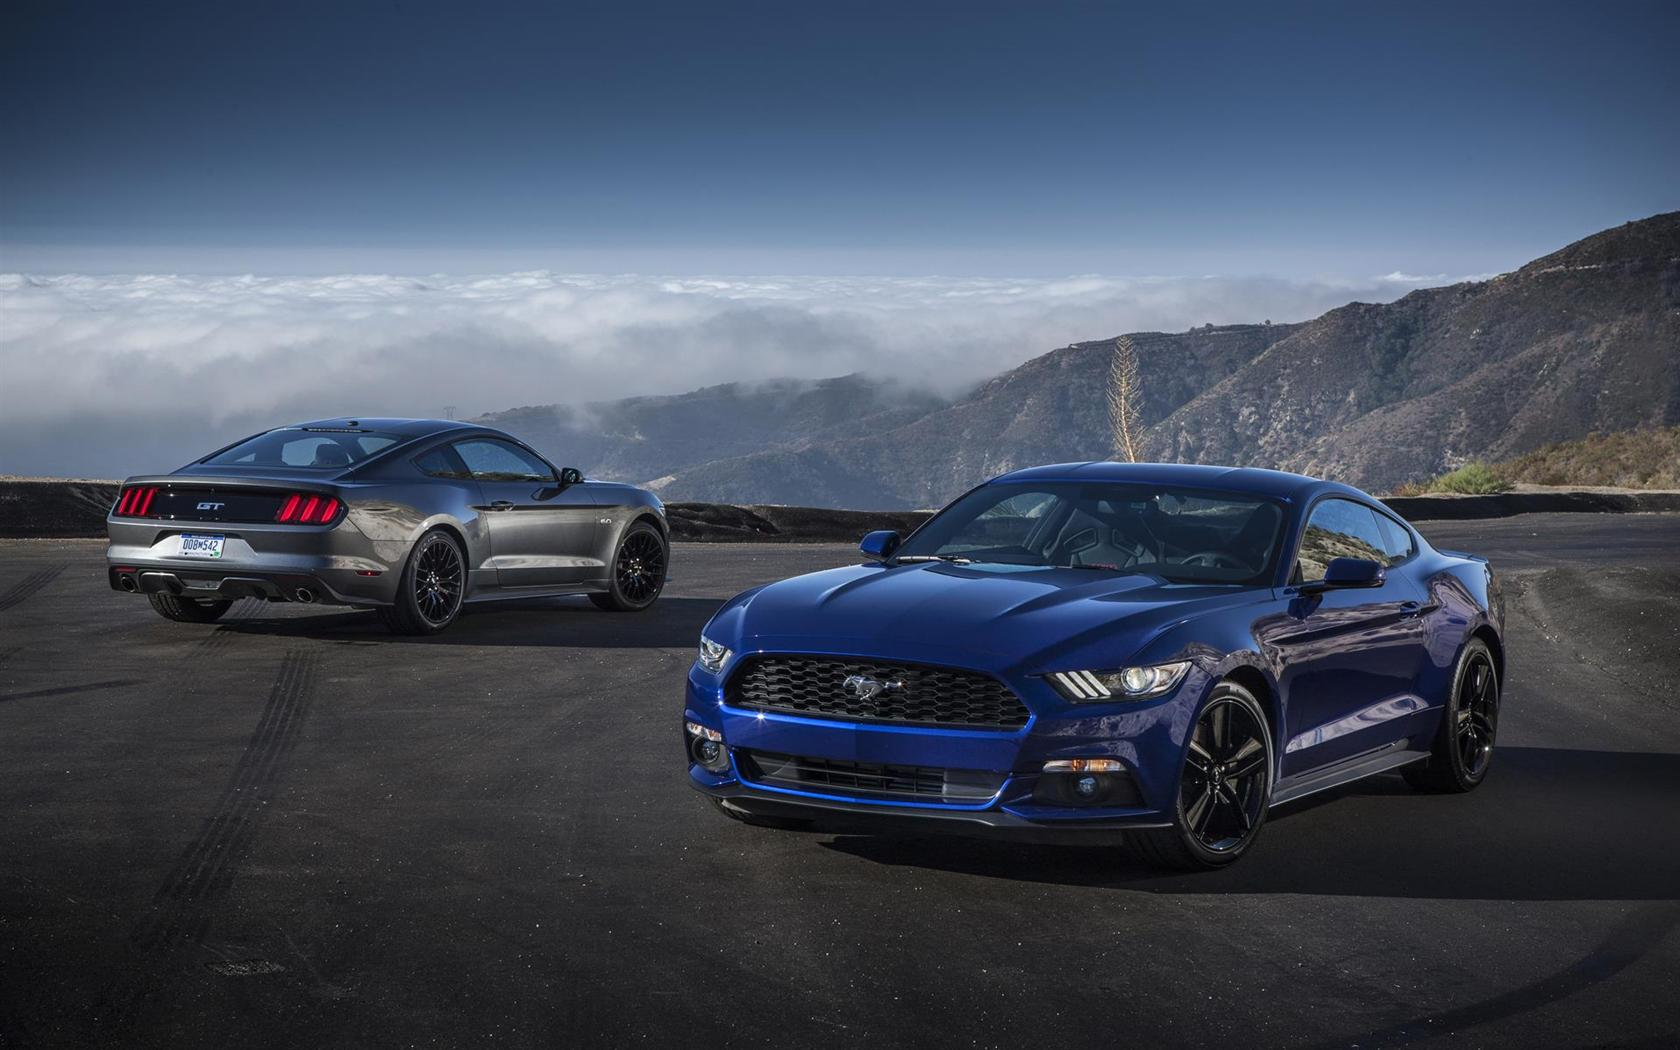 Mustang Concept >> 2015 Ford Mustang Image. Photo 49 of 68